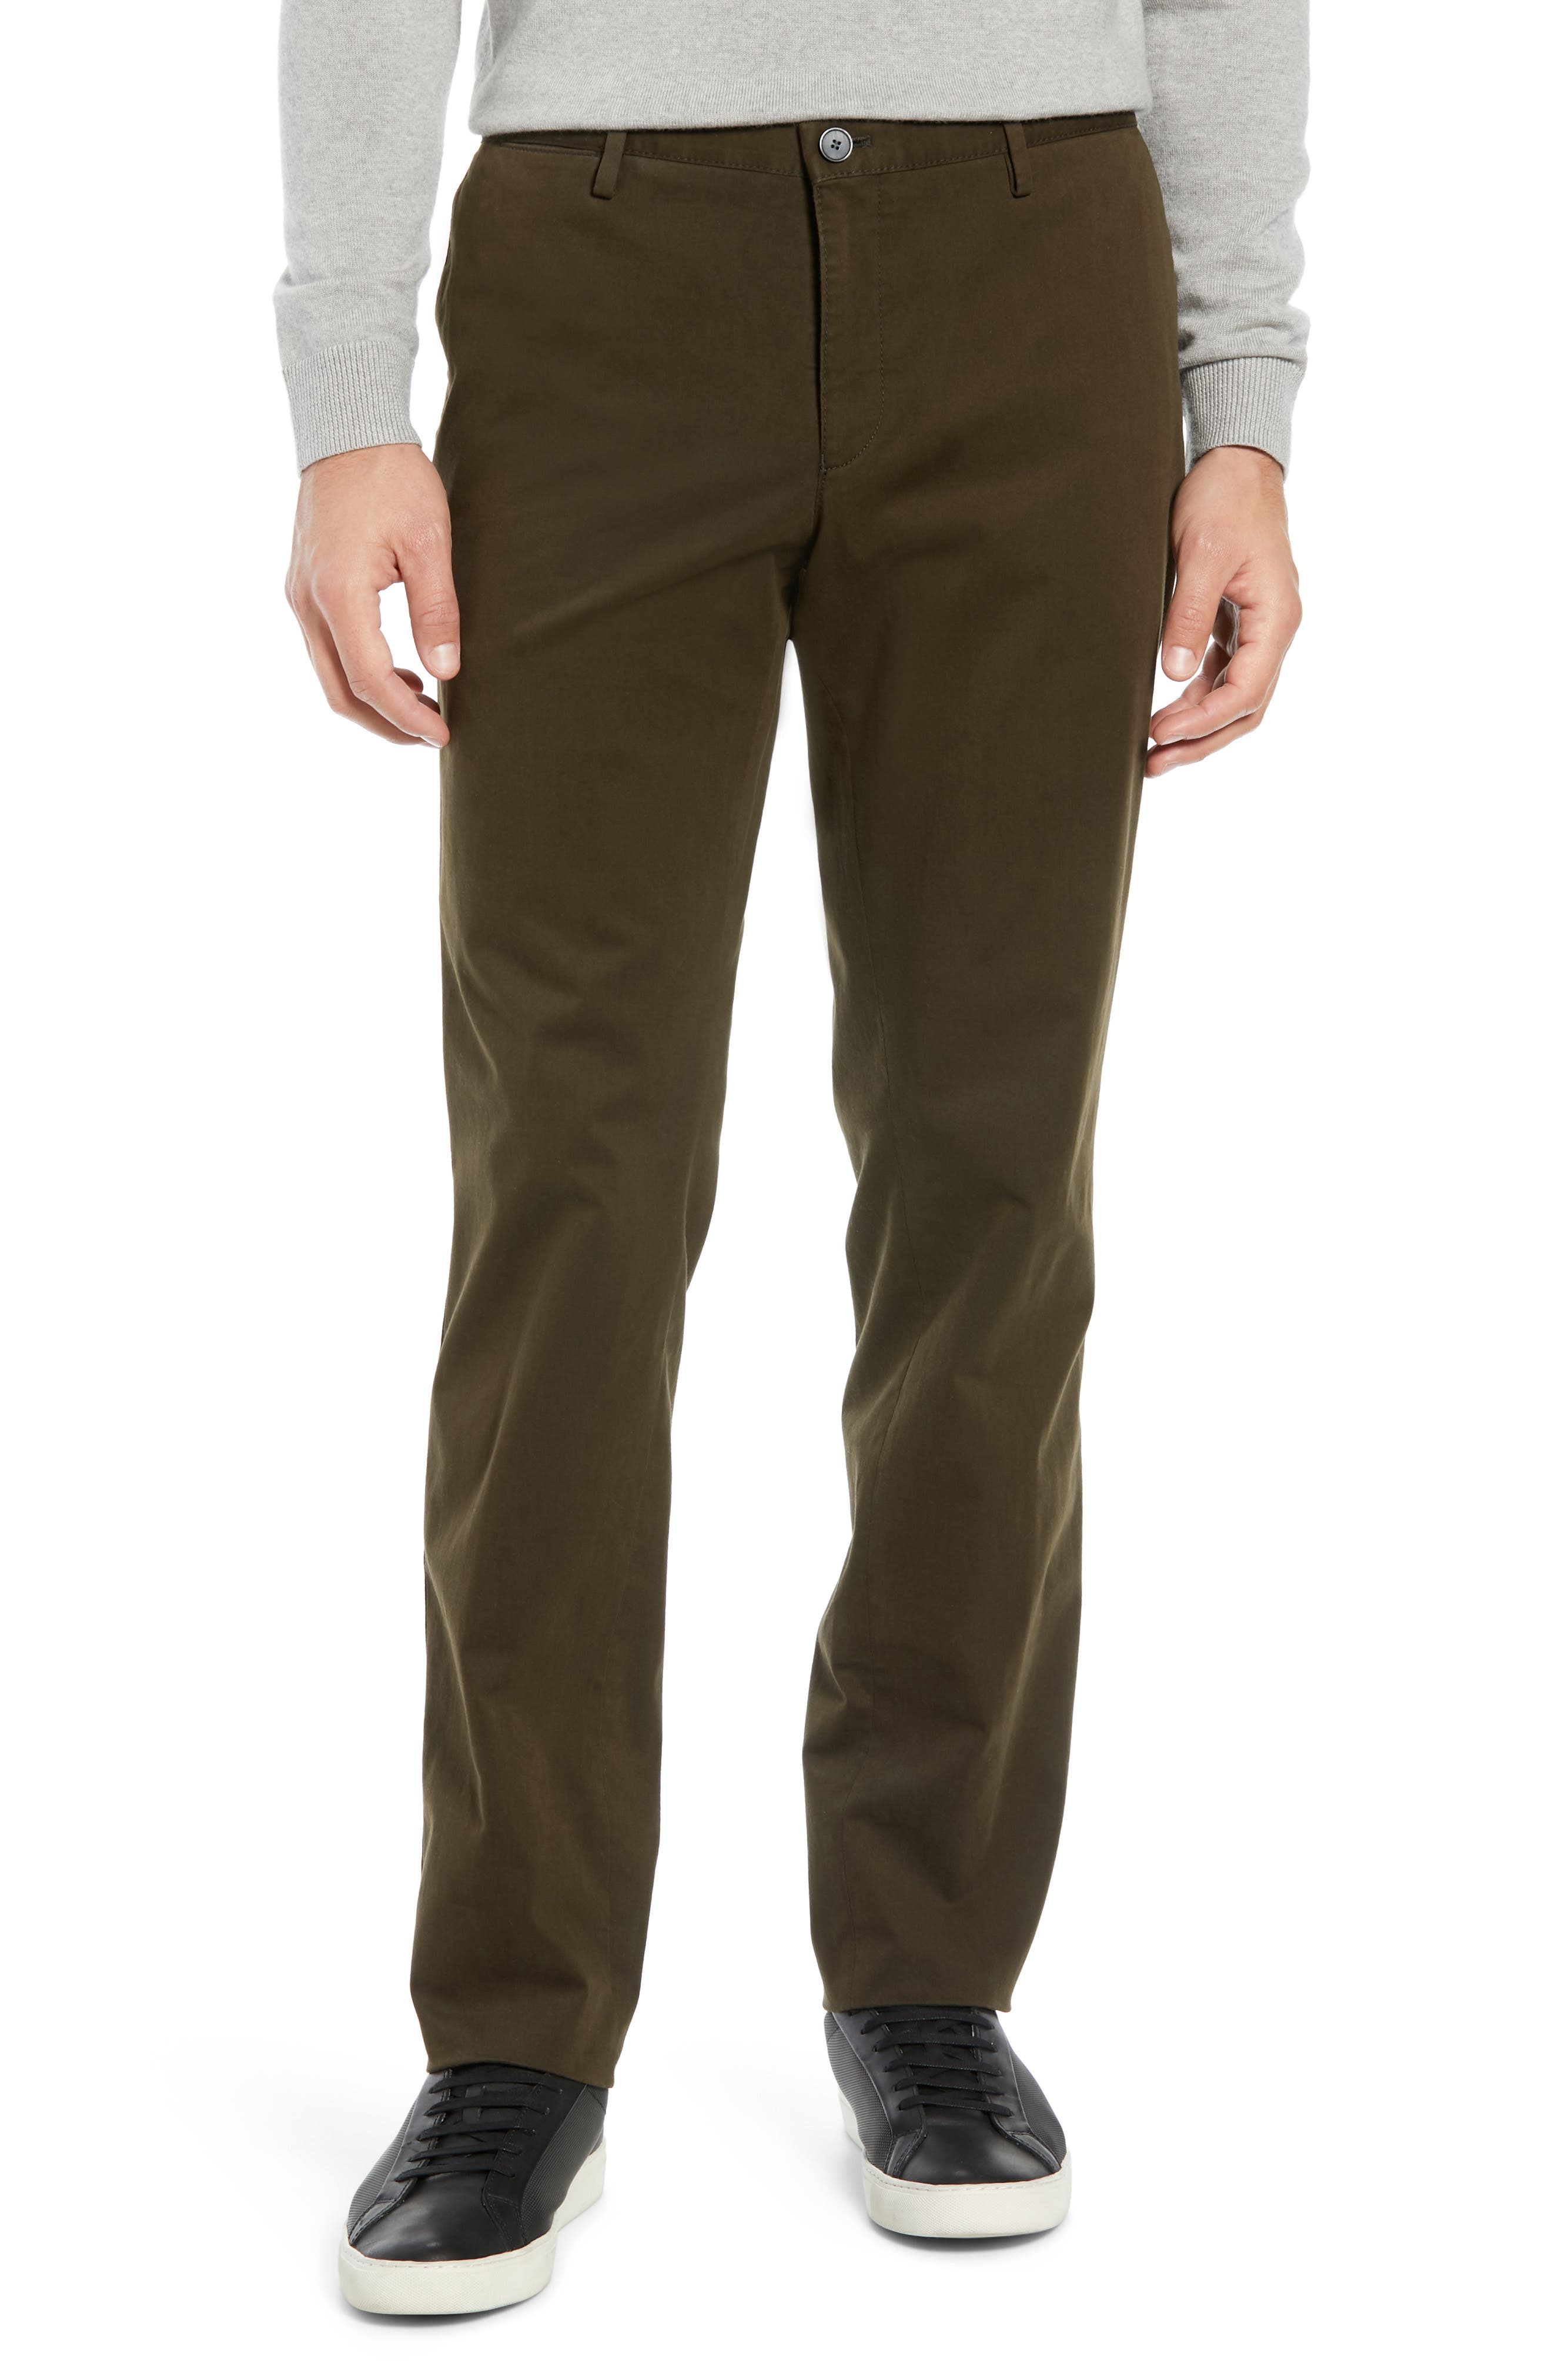 Stanino Flat Front Stretch Cotton Solid Trousers,                         Main,                         color, OLIVE